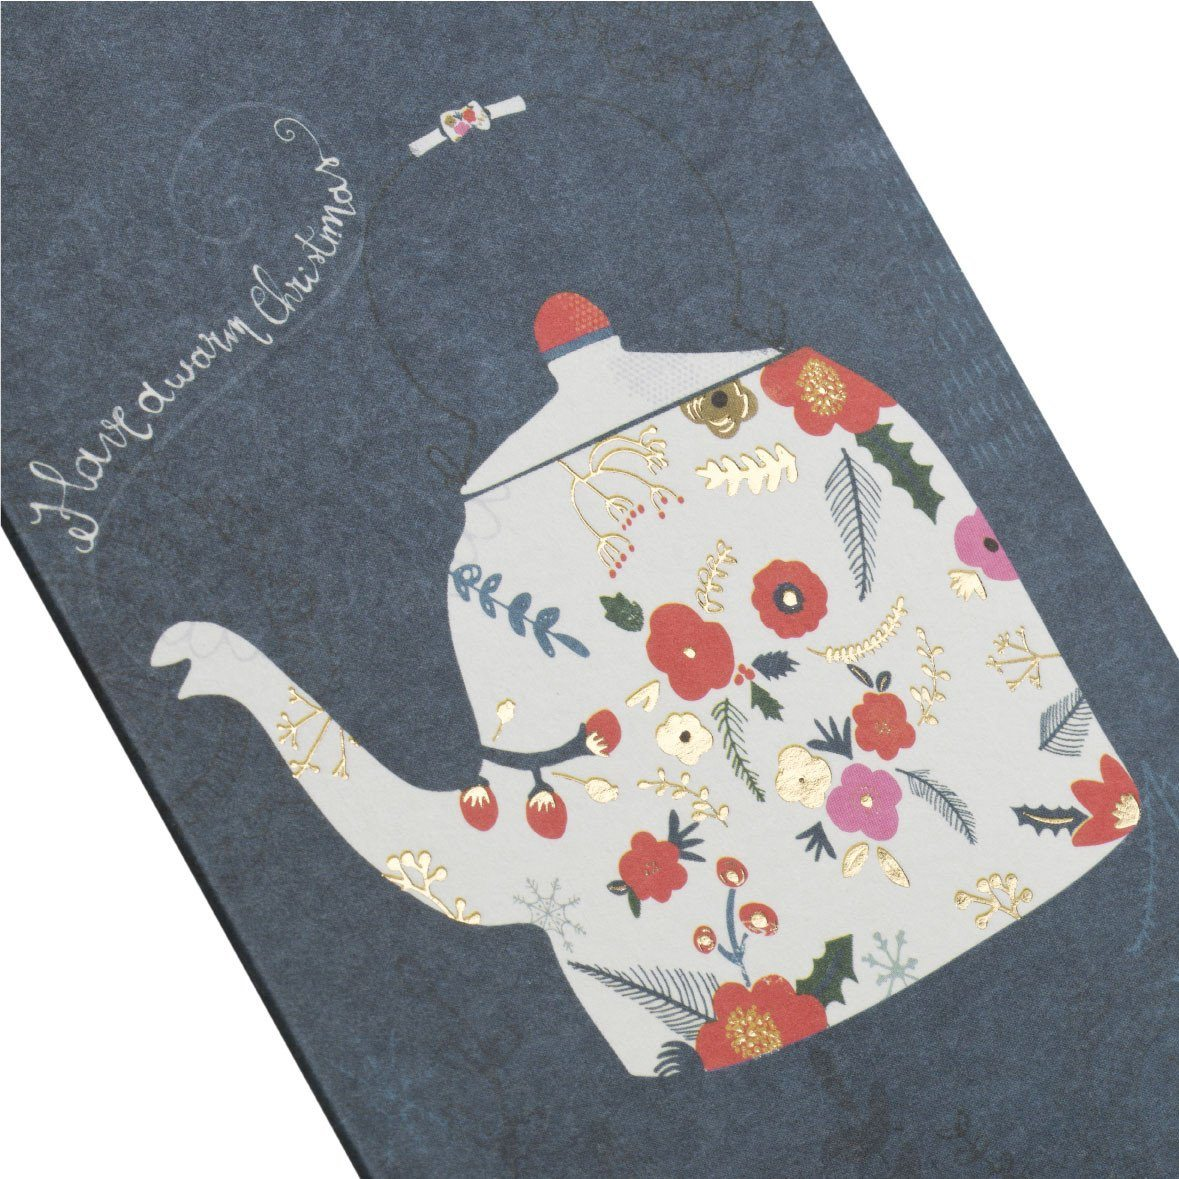 The Teapot Greeting Card - Christmas Cards - MULTIFOLIA ATELIER di Rita Girola - Naiise